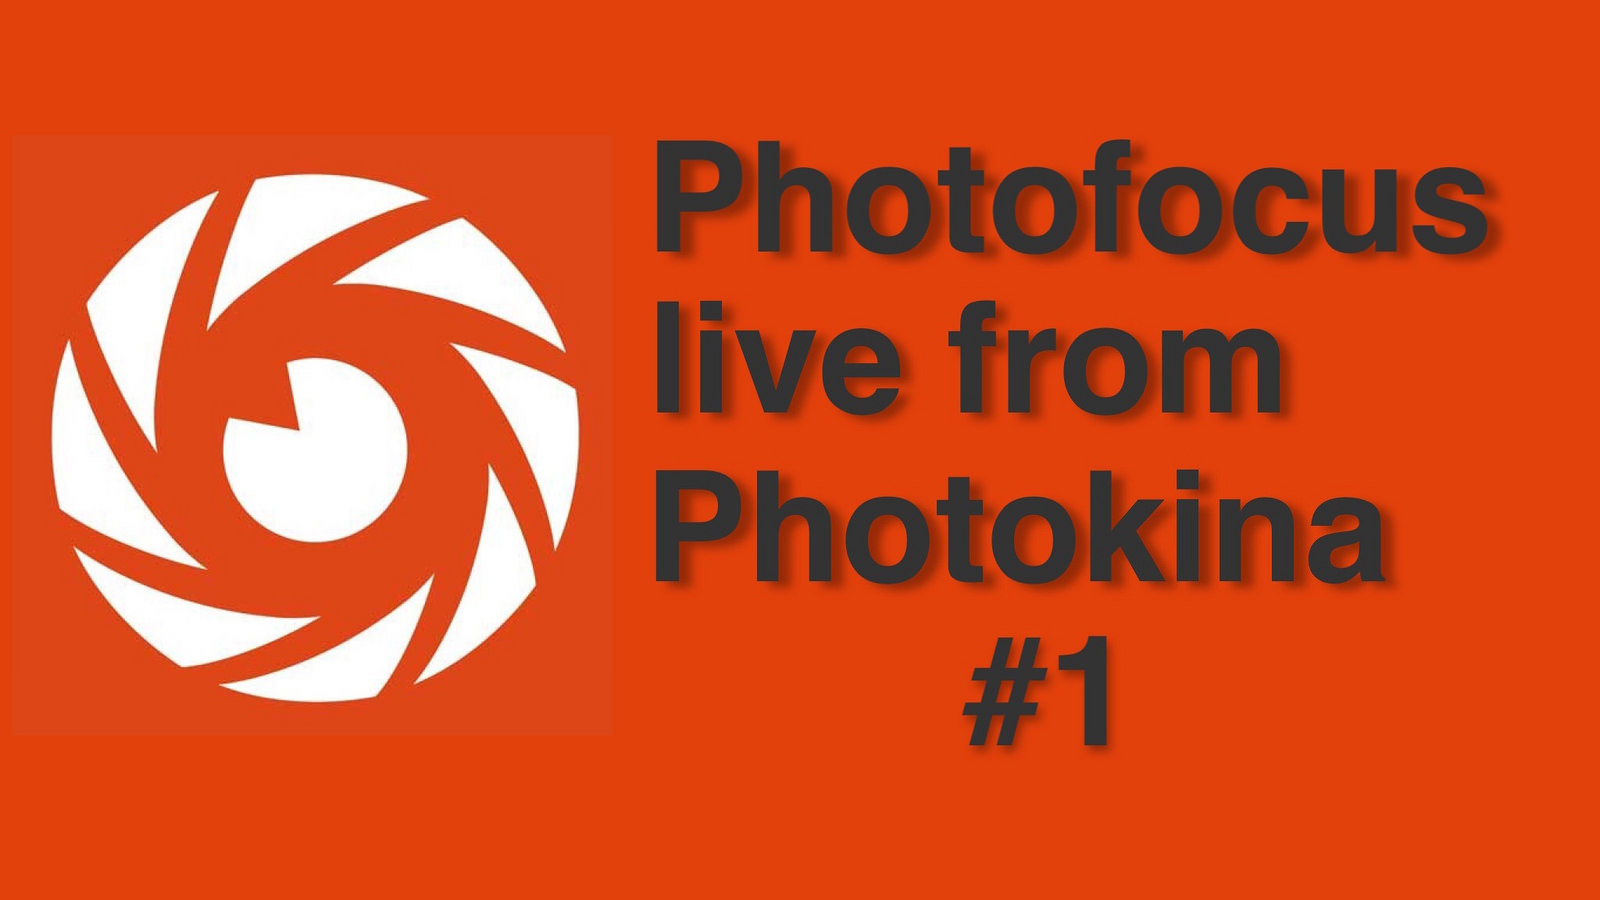 live-from-photokina-2016-1